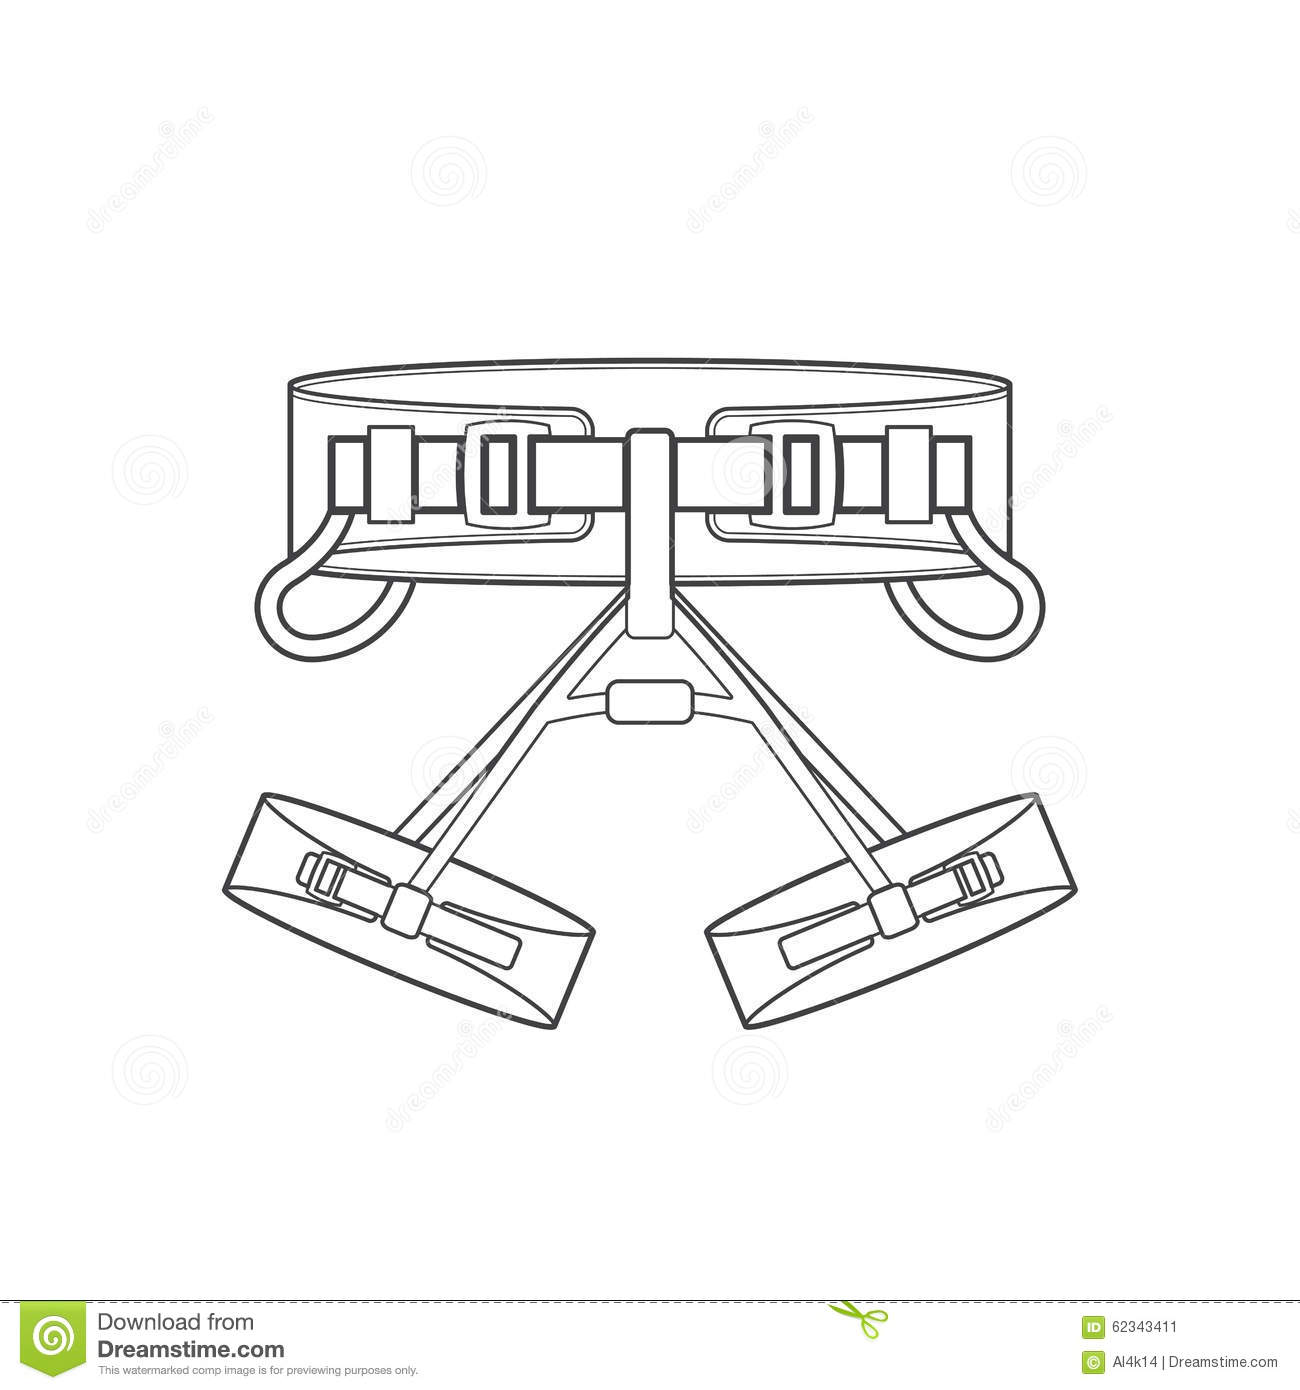 Outline Alpinism Equipment Harness Icon Illustration Stock Image